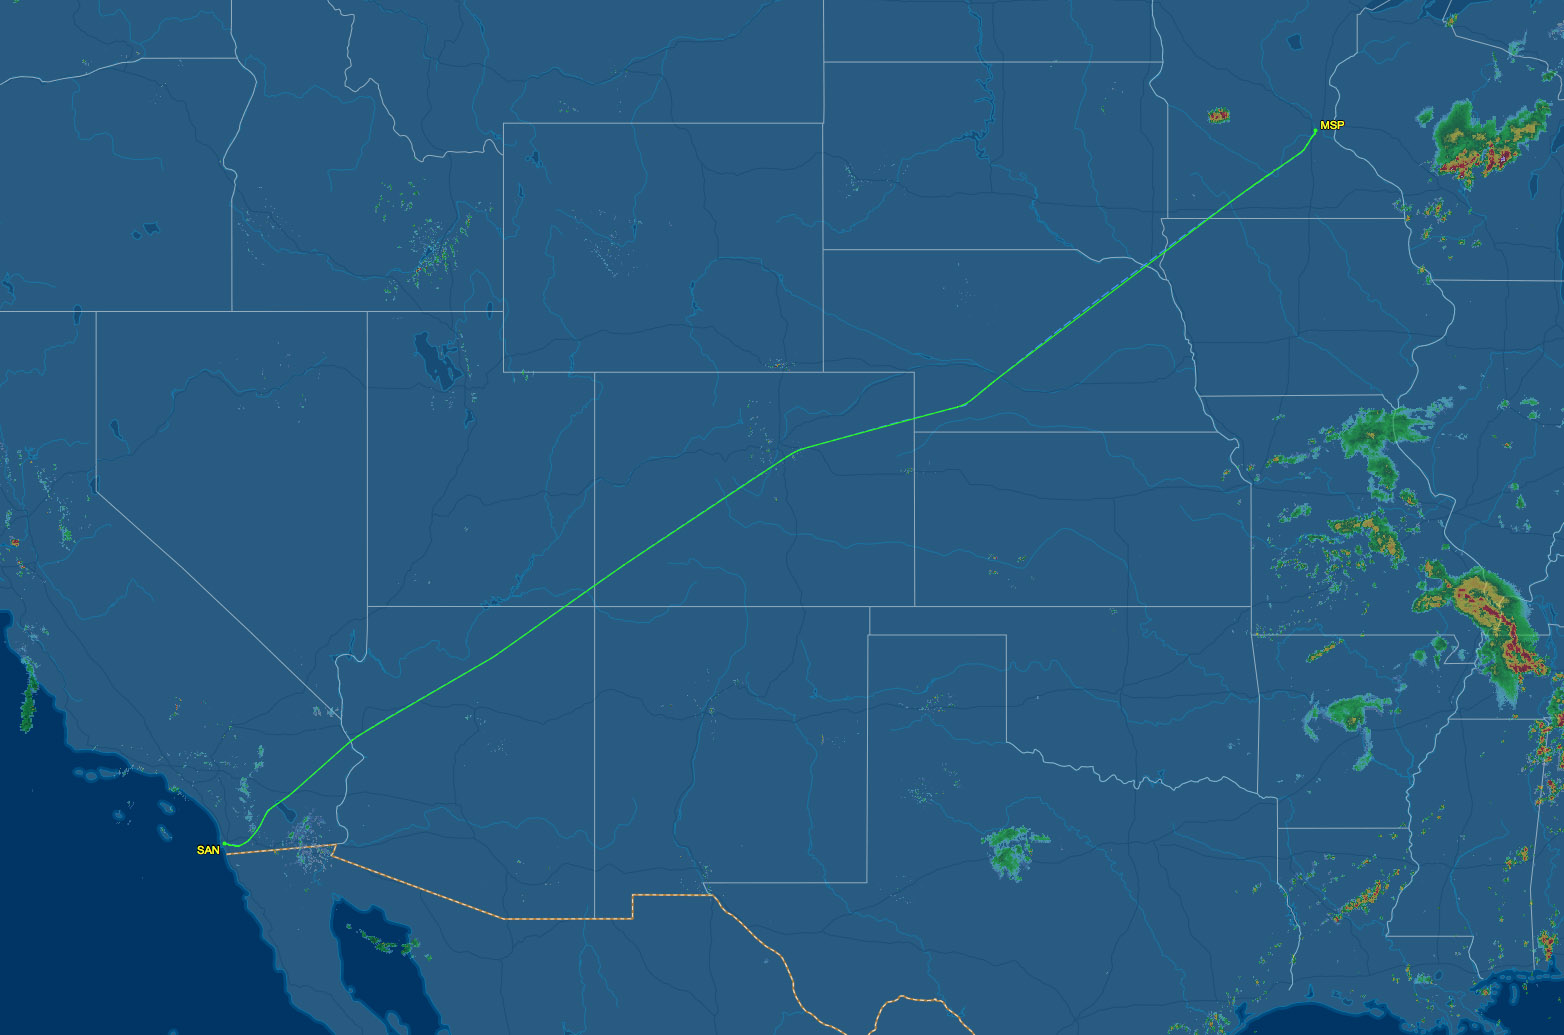 MSP to SAN flight path